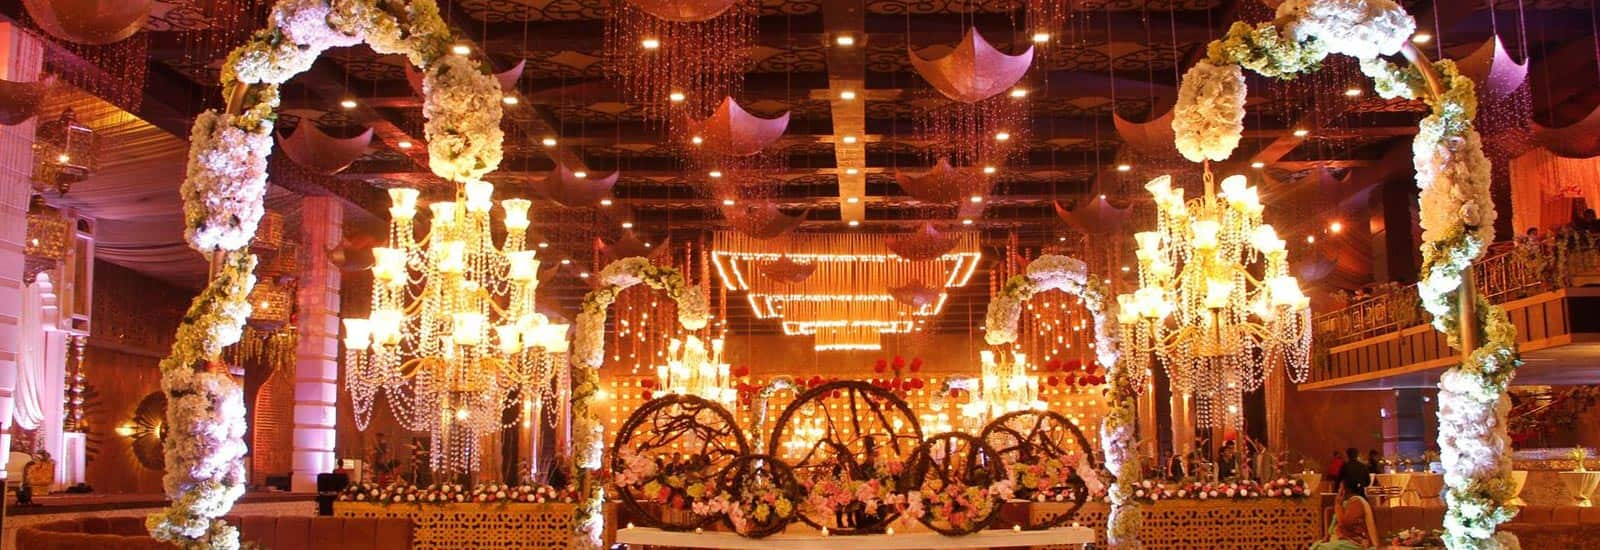 Luxury banquet hall image by FNP Gardens